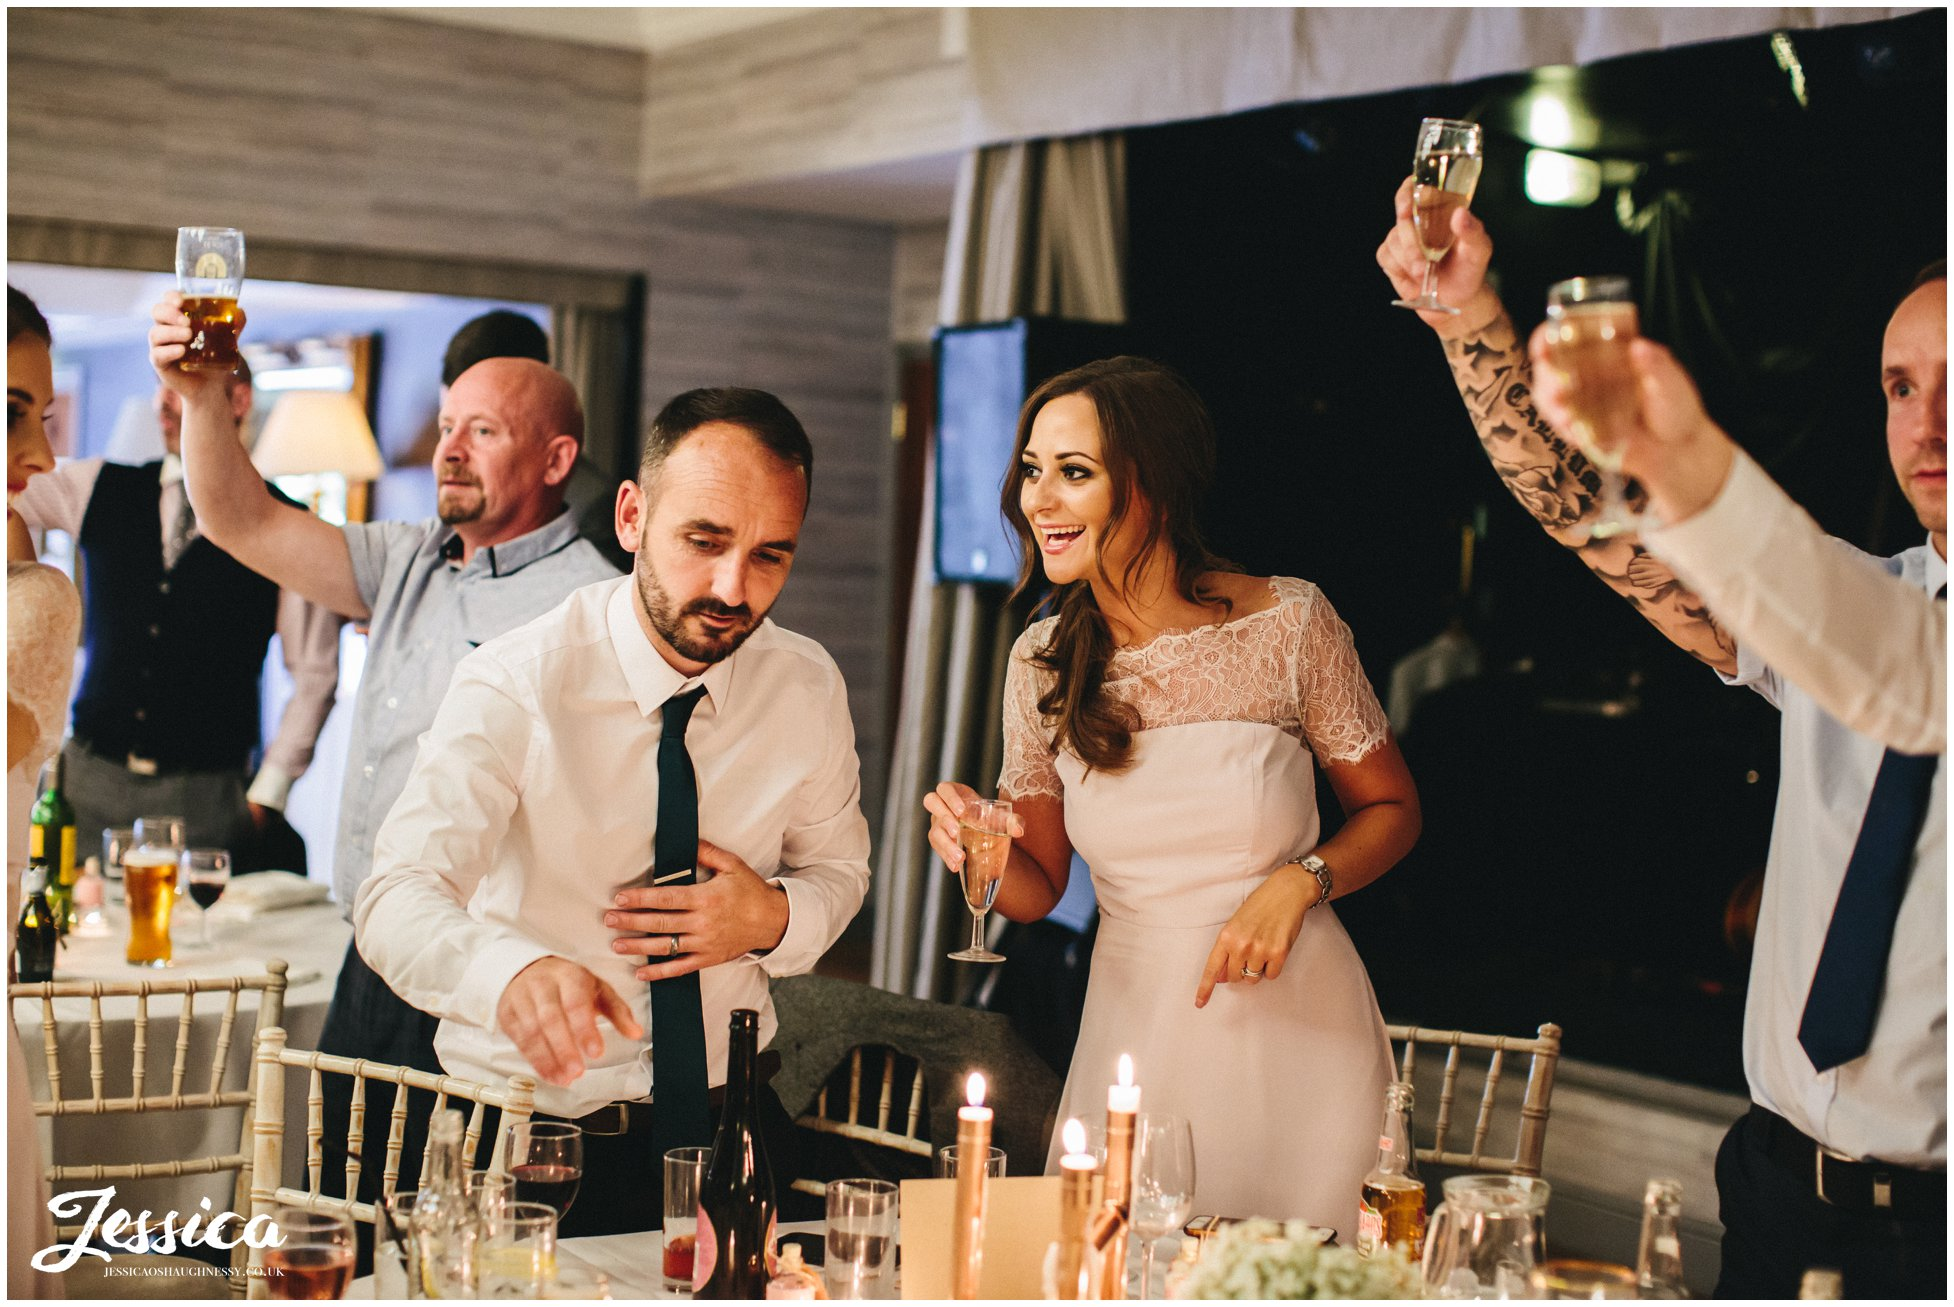 guests cheer as newly wed's enter